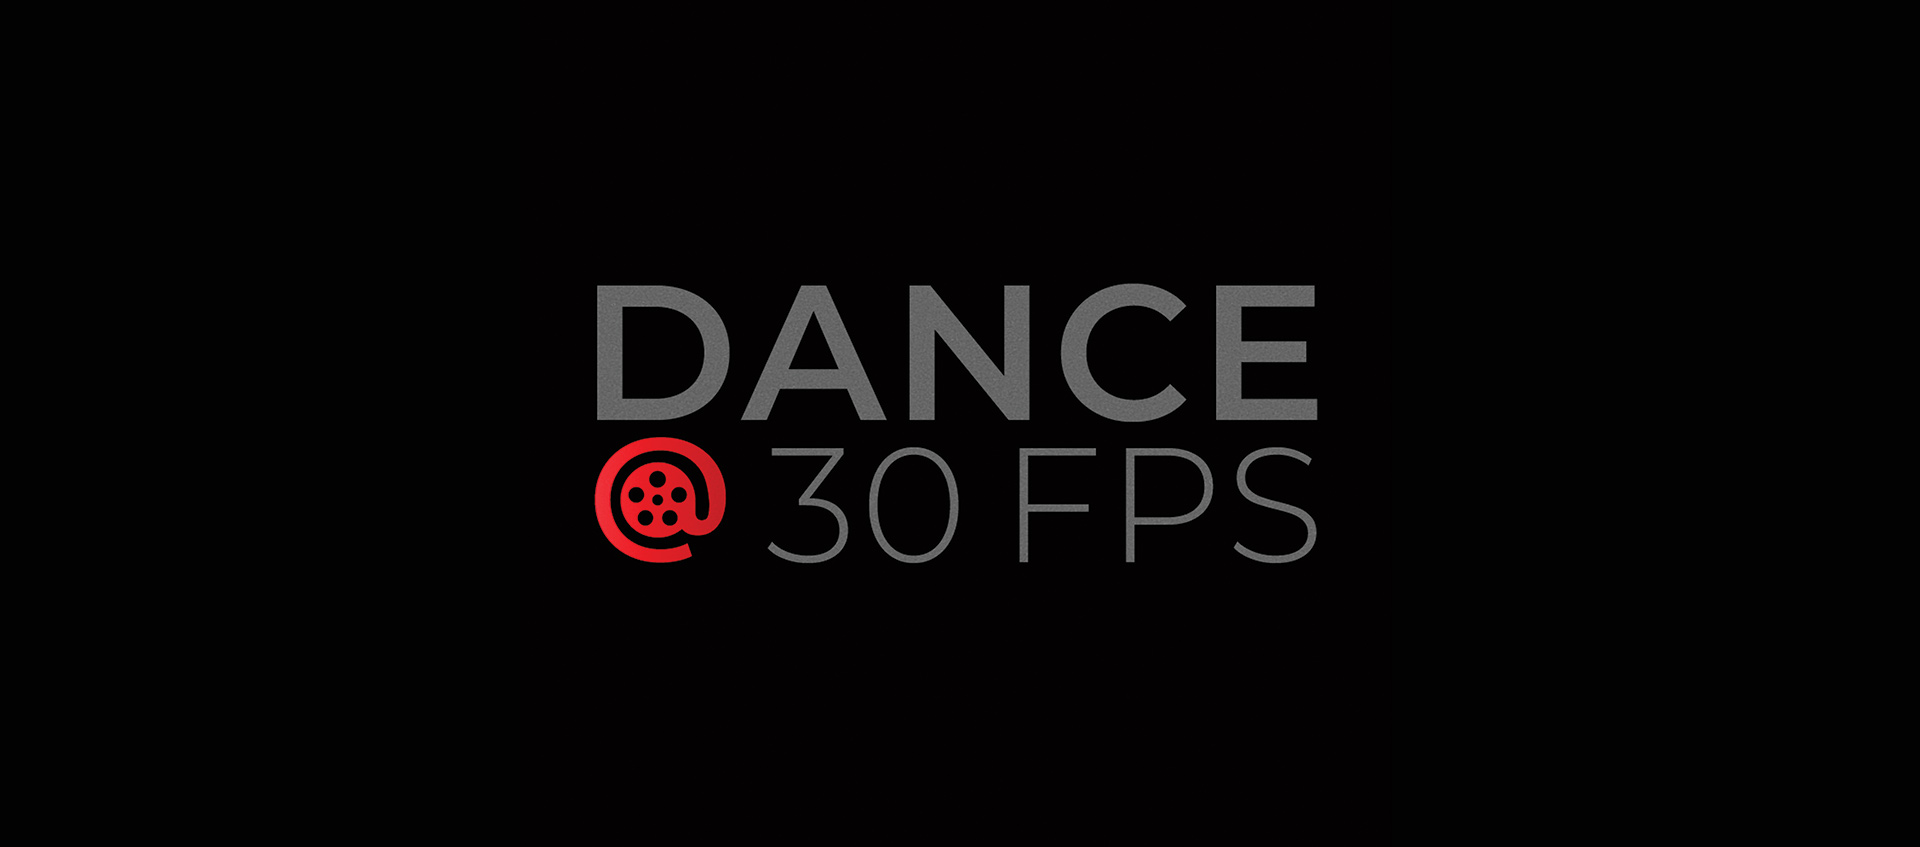 Dance@30FPS logo